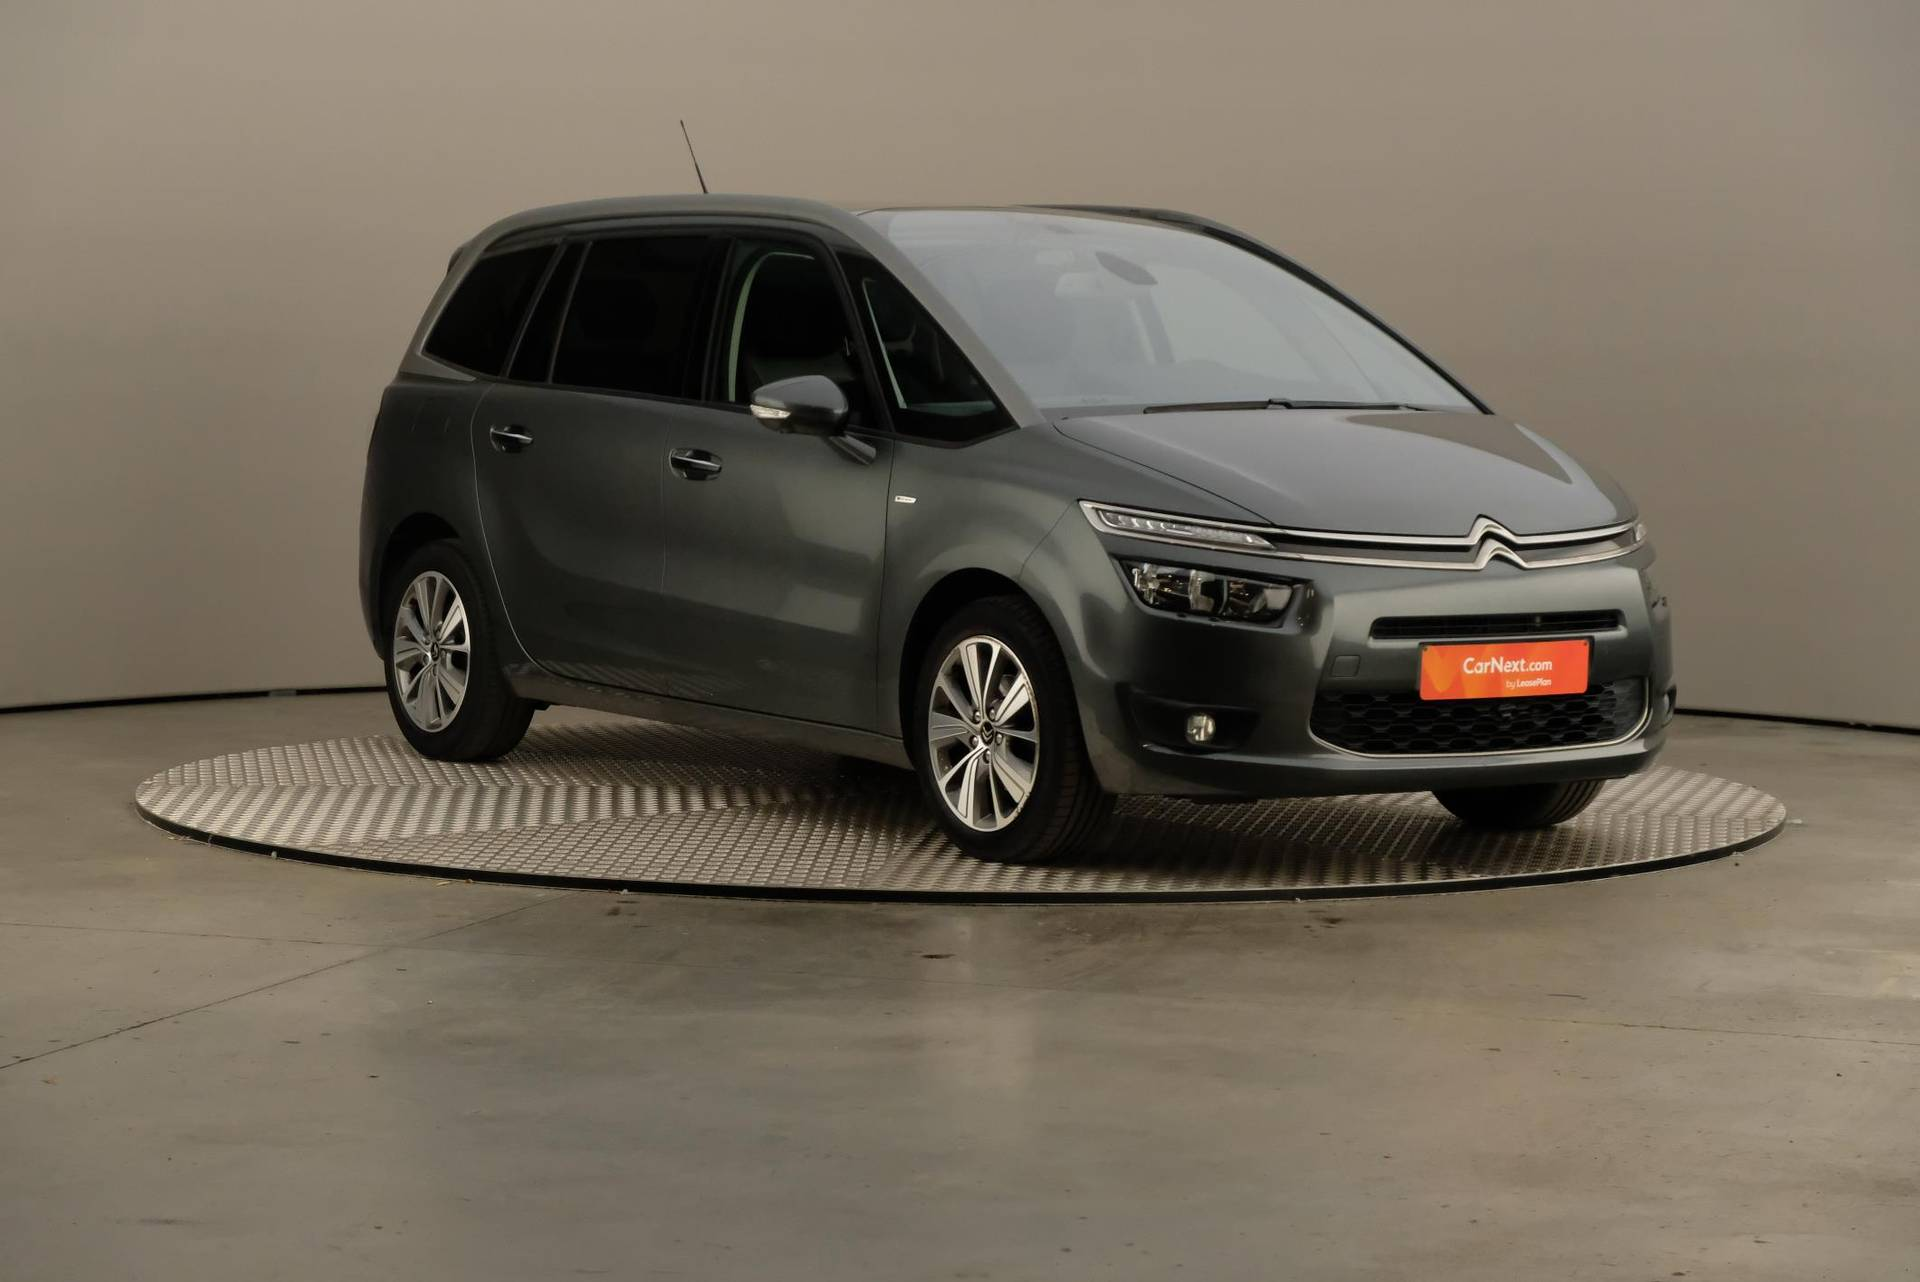 Citroën C4 Picasso e-HDi 115 ETG6, Attraction 7pl. PANO SOUND SYST. GPS CAMERA TREKHAAK..., 360-image28